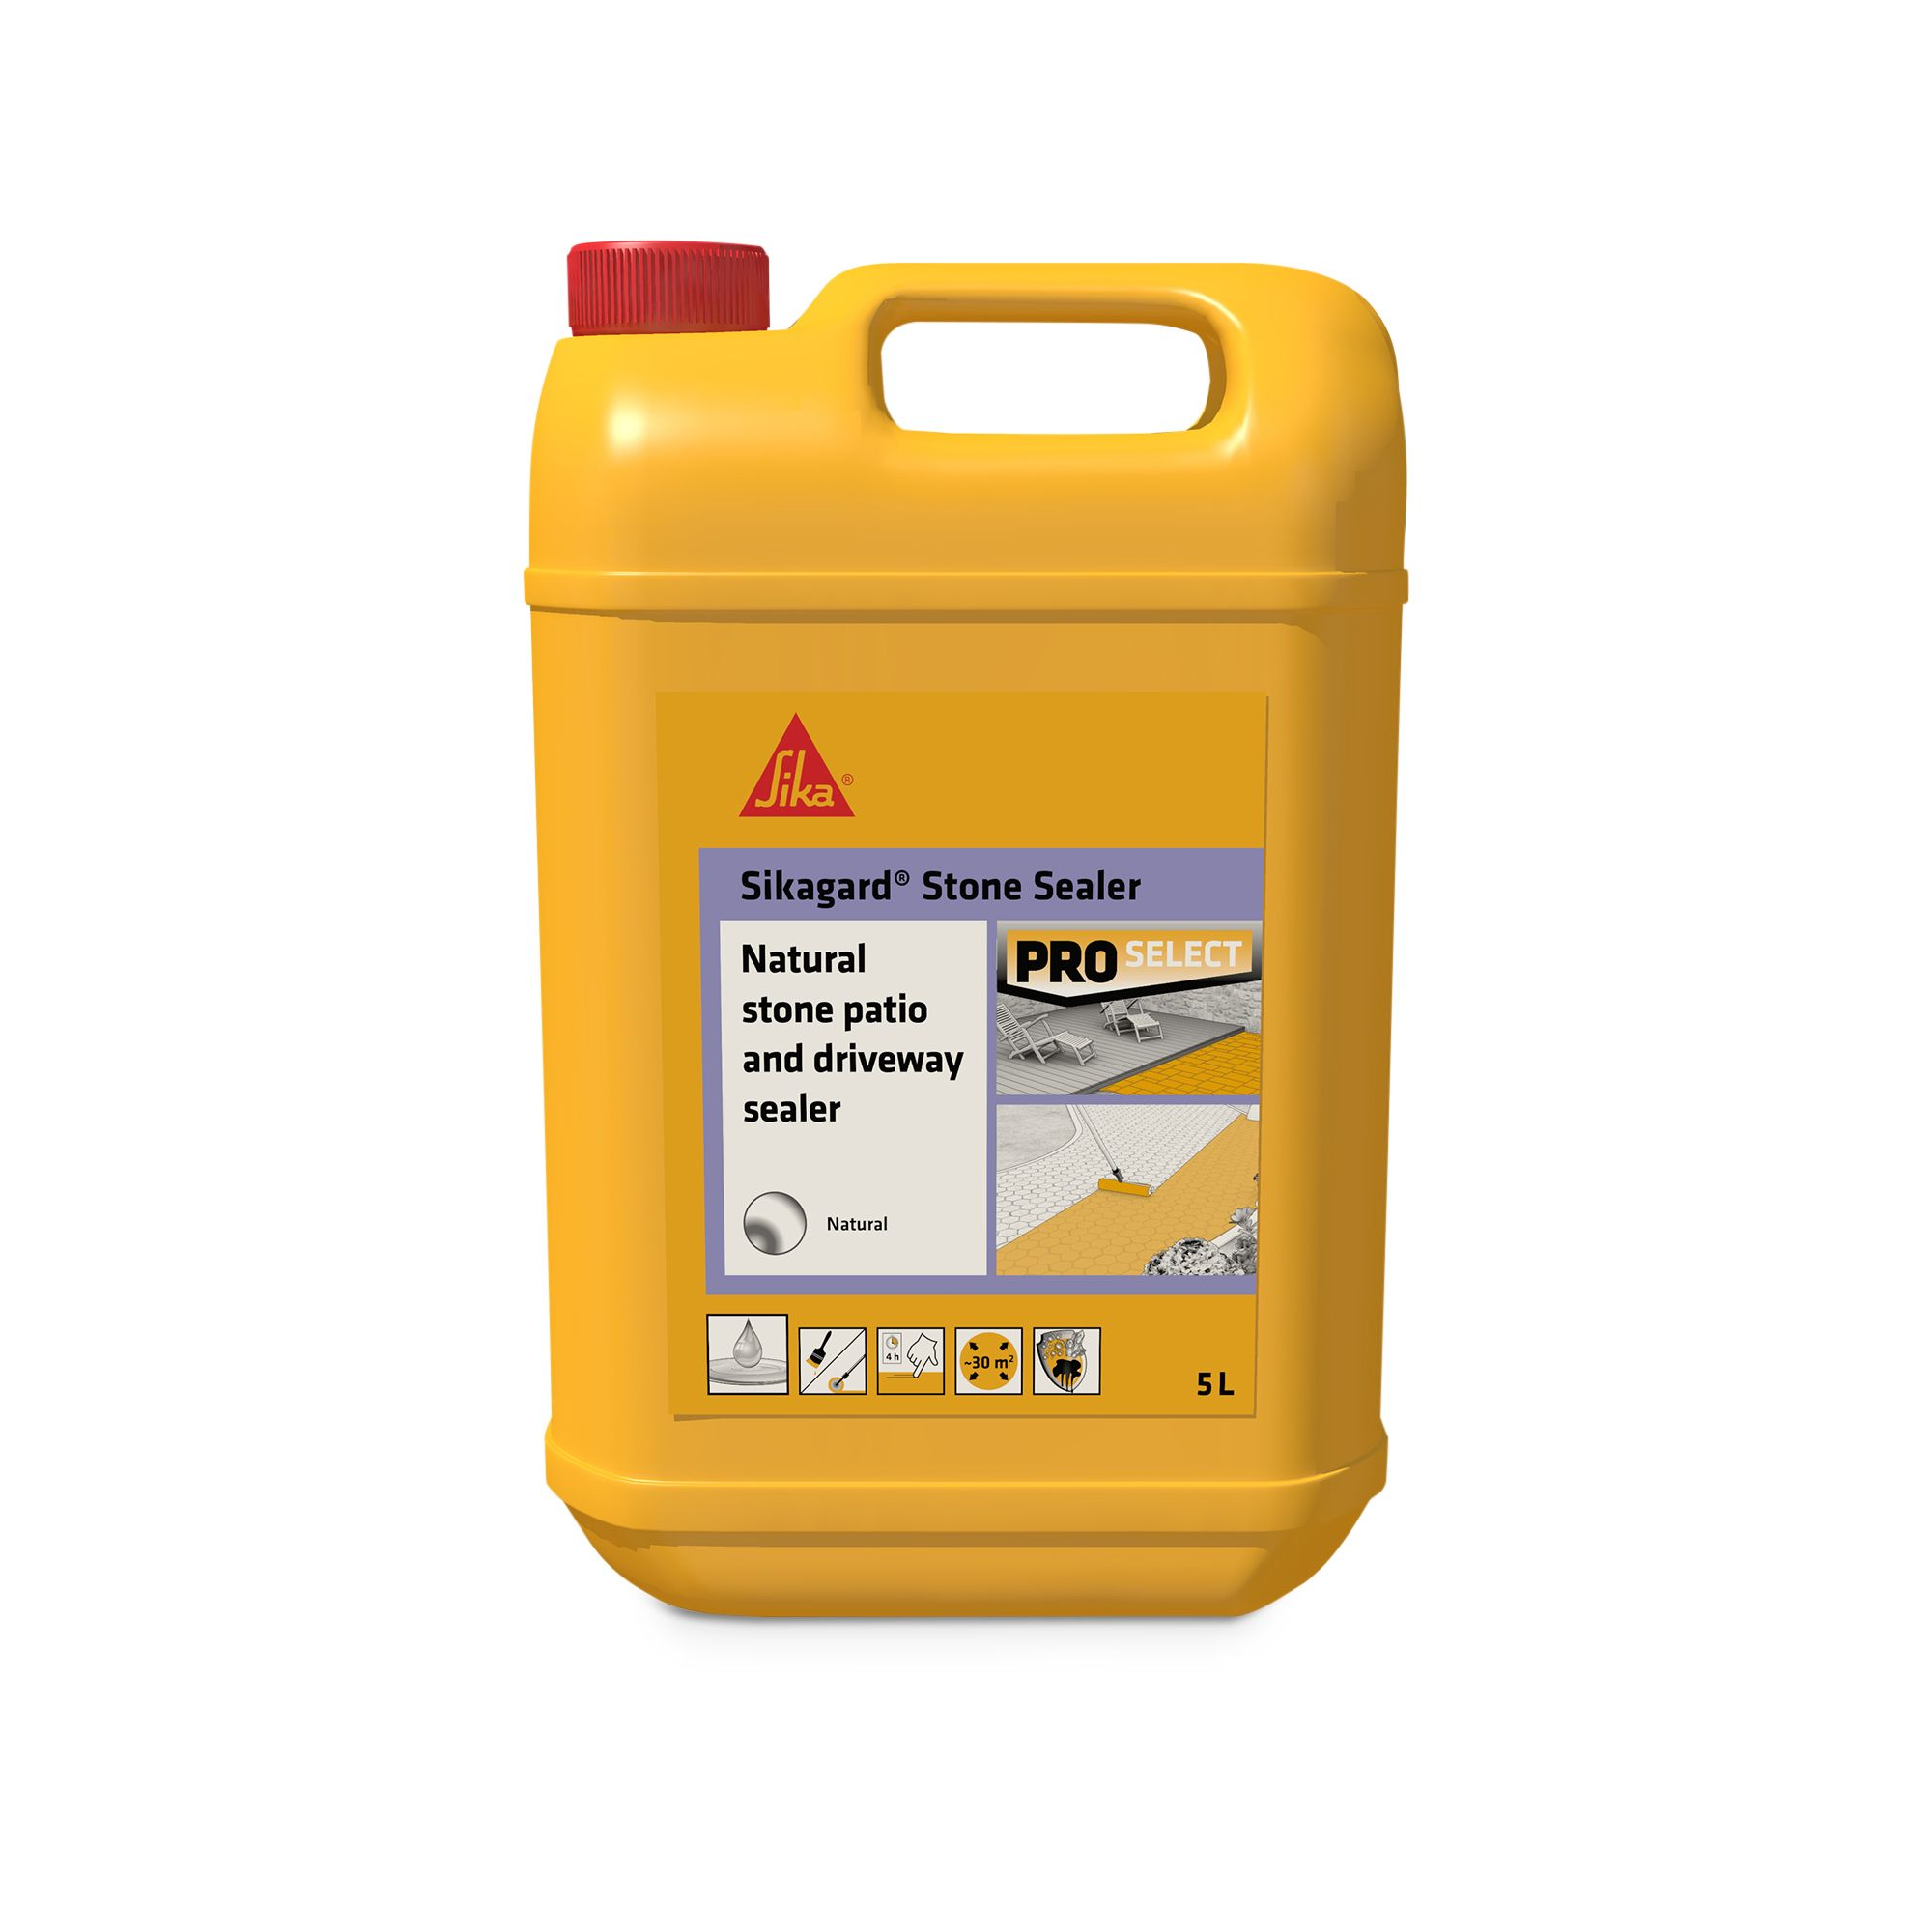 Sika Natural Stone Patio & driveway sealer 5L | Departments | DIY at B&Q